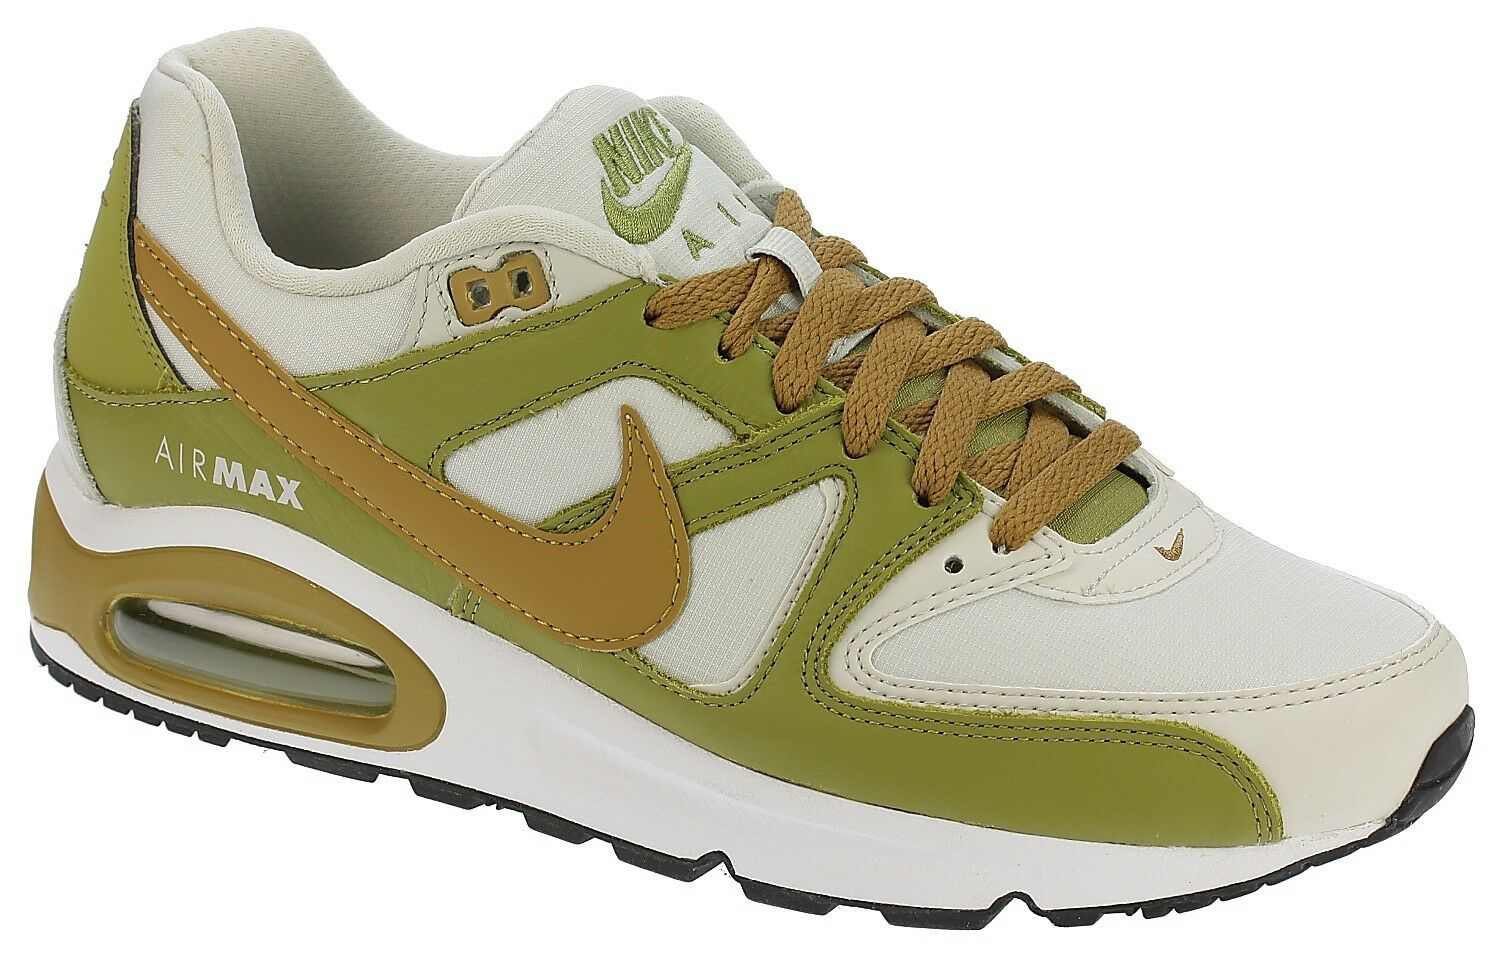 Nike Air Max Command Men's Running shoes 629993-035